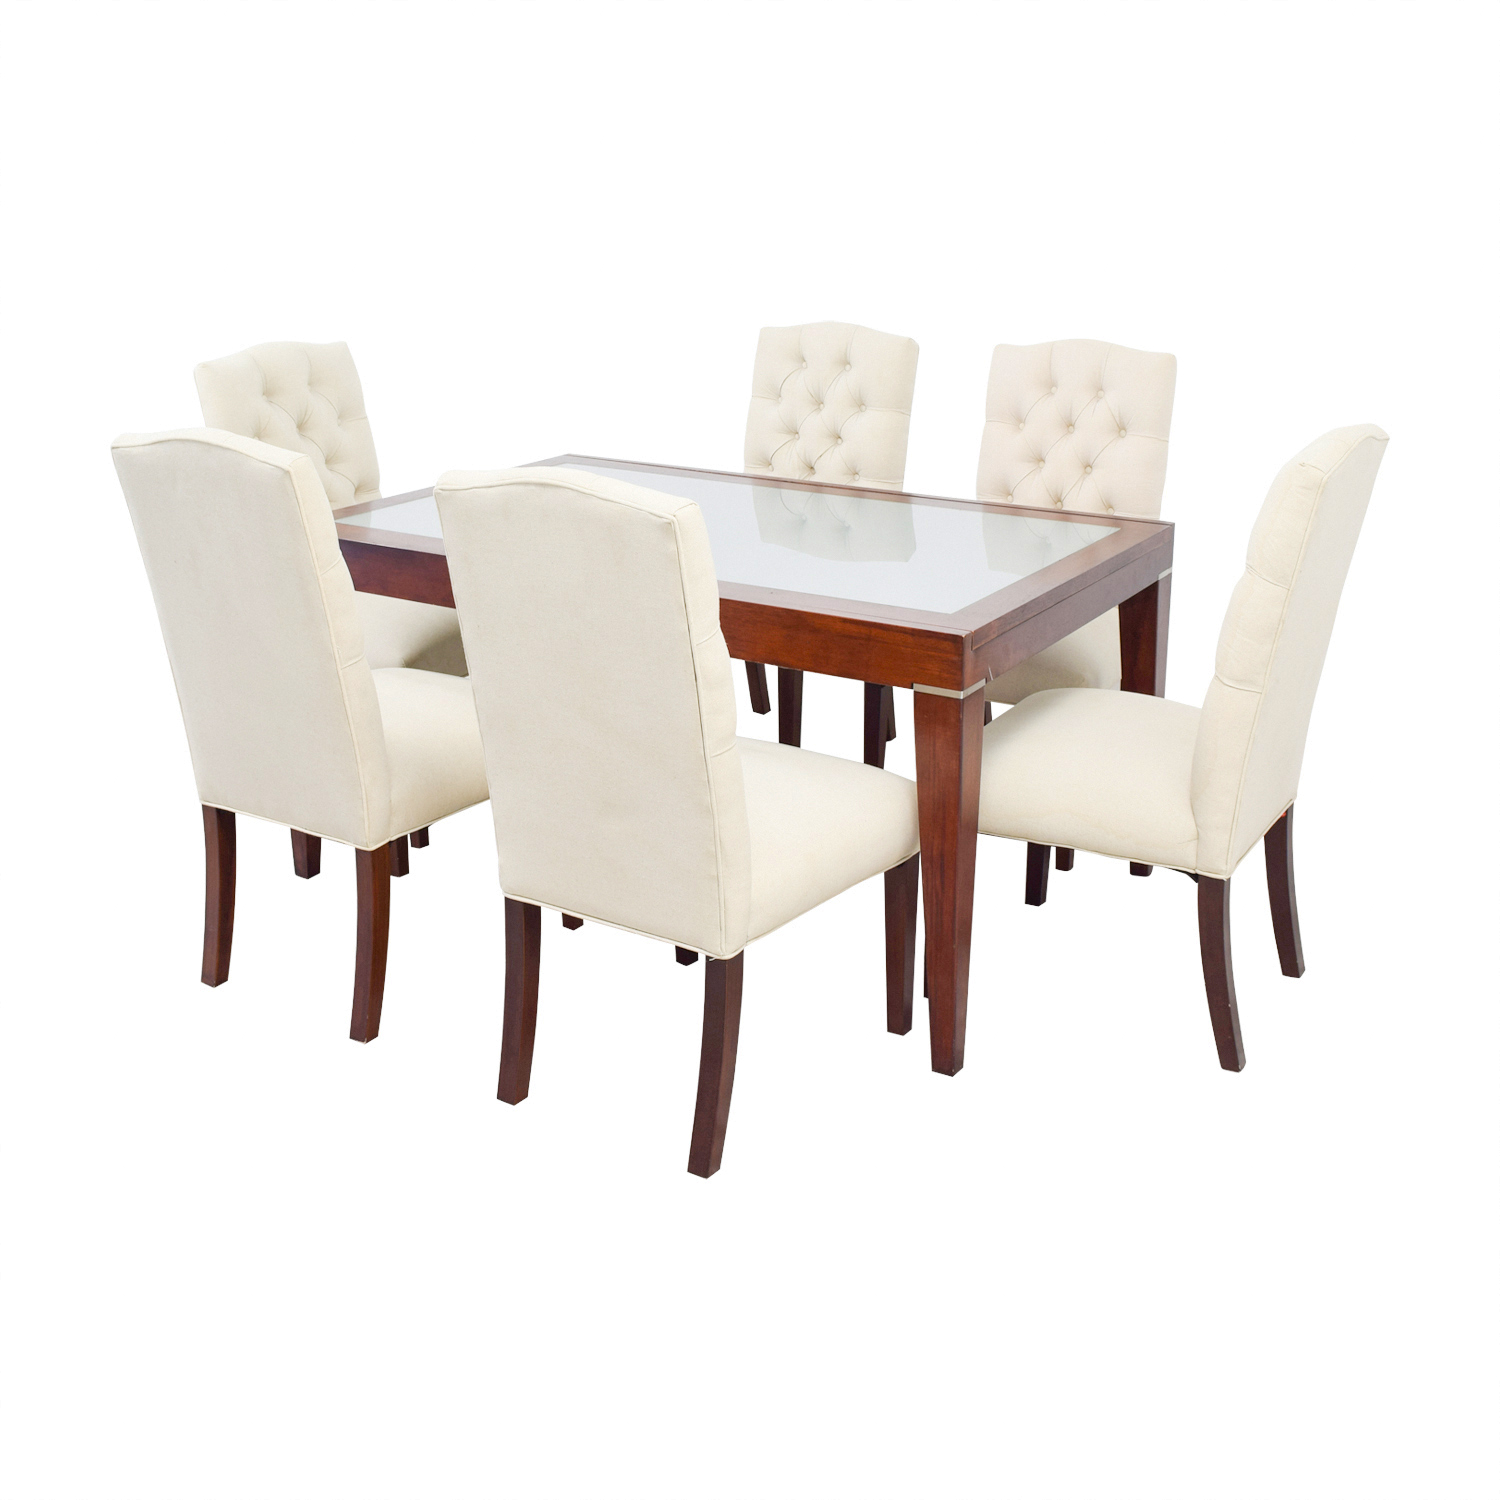 West Elm West Elm Extendable Glass & Wood Dining Set with Upholstered Tufted Chairs used